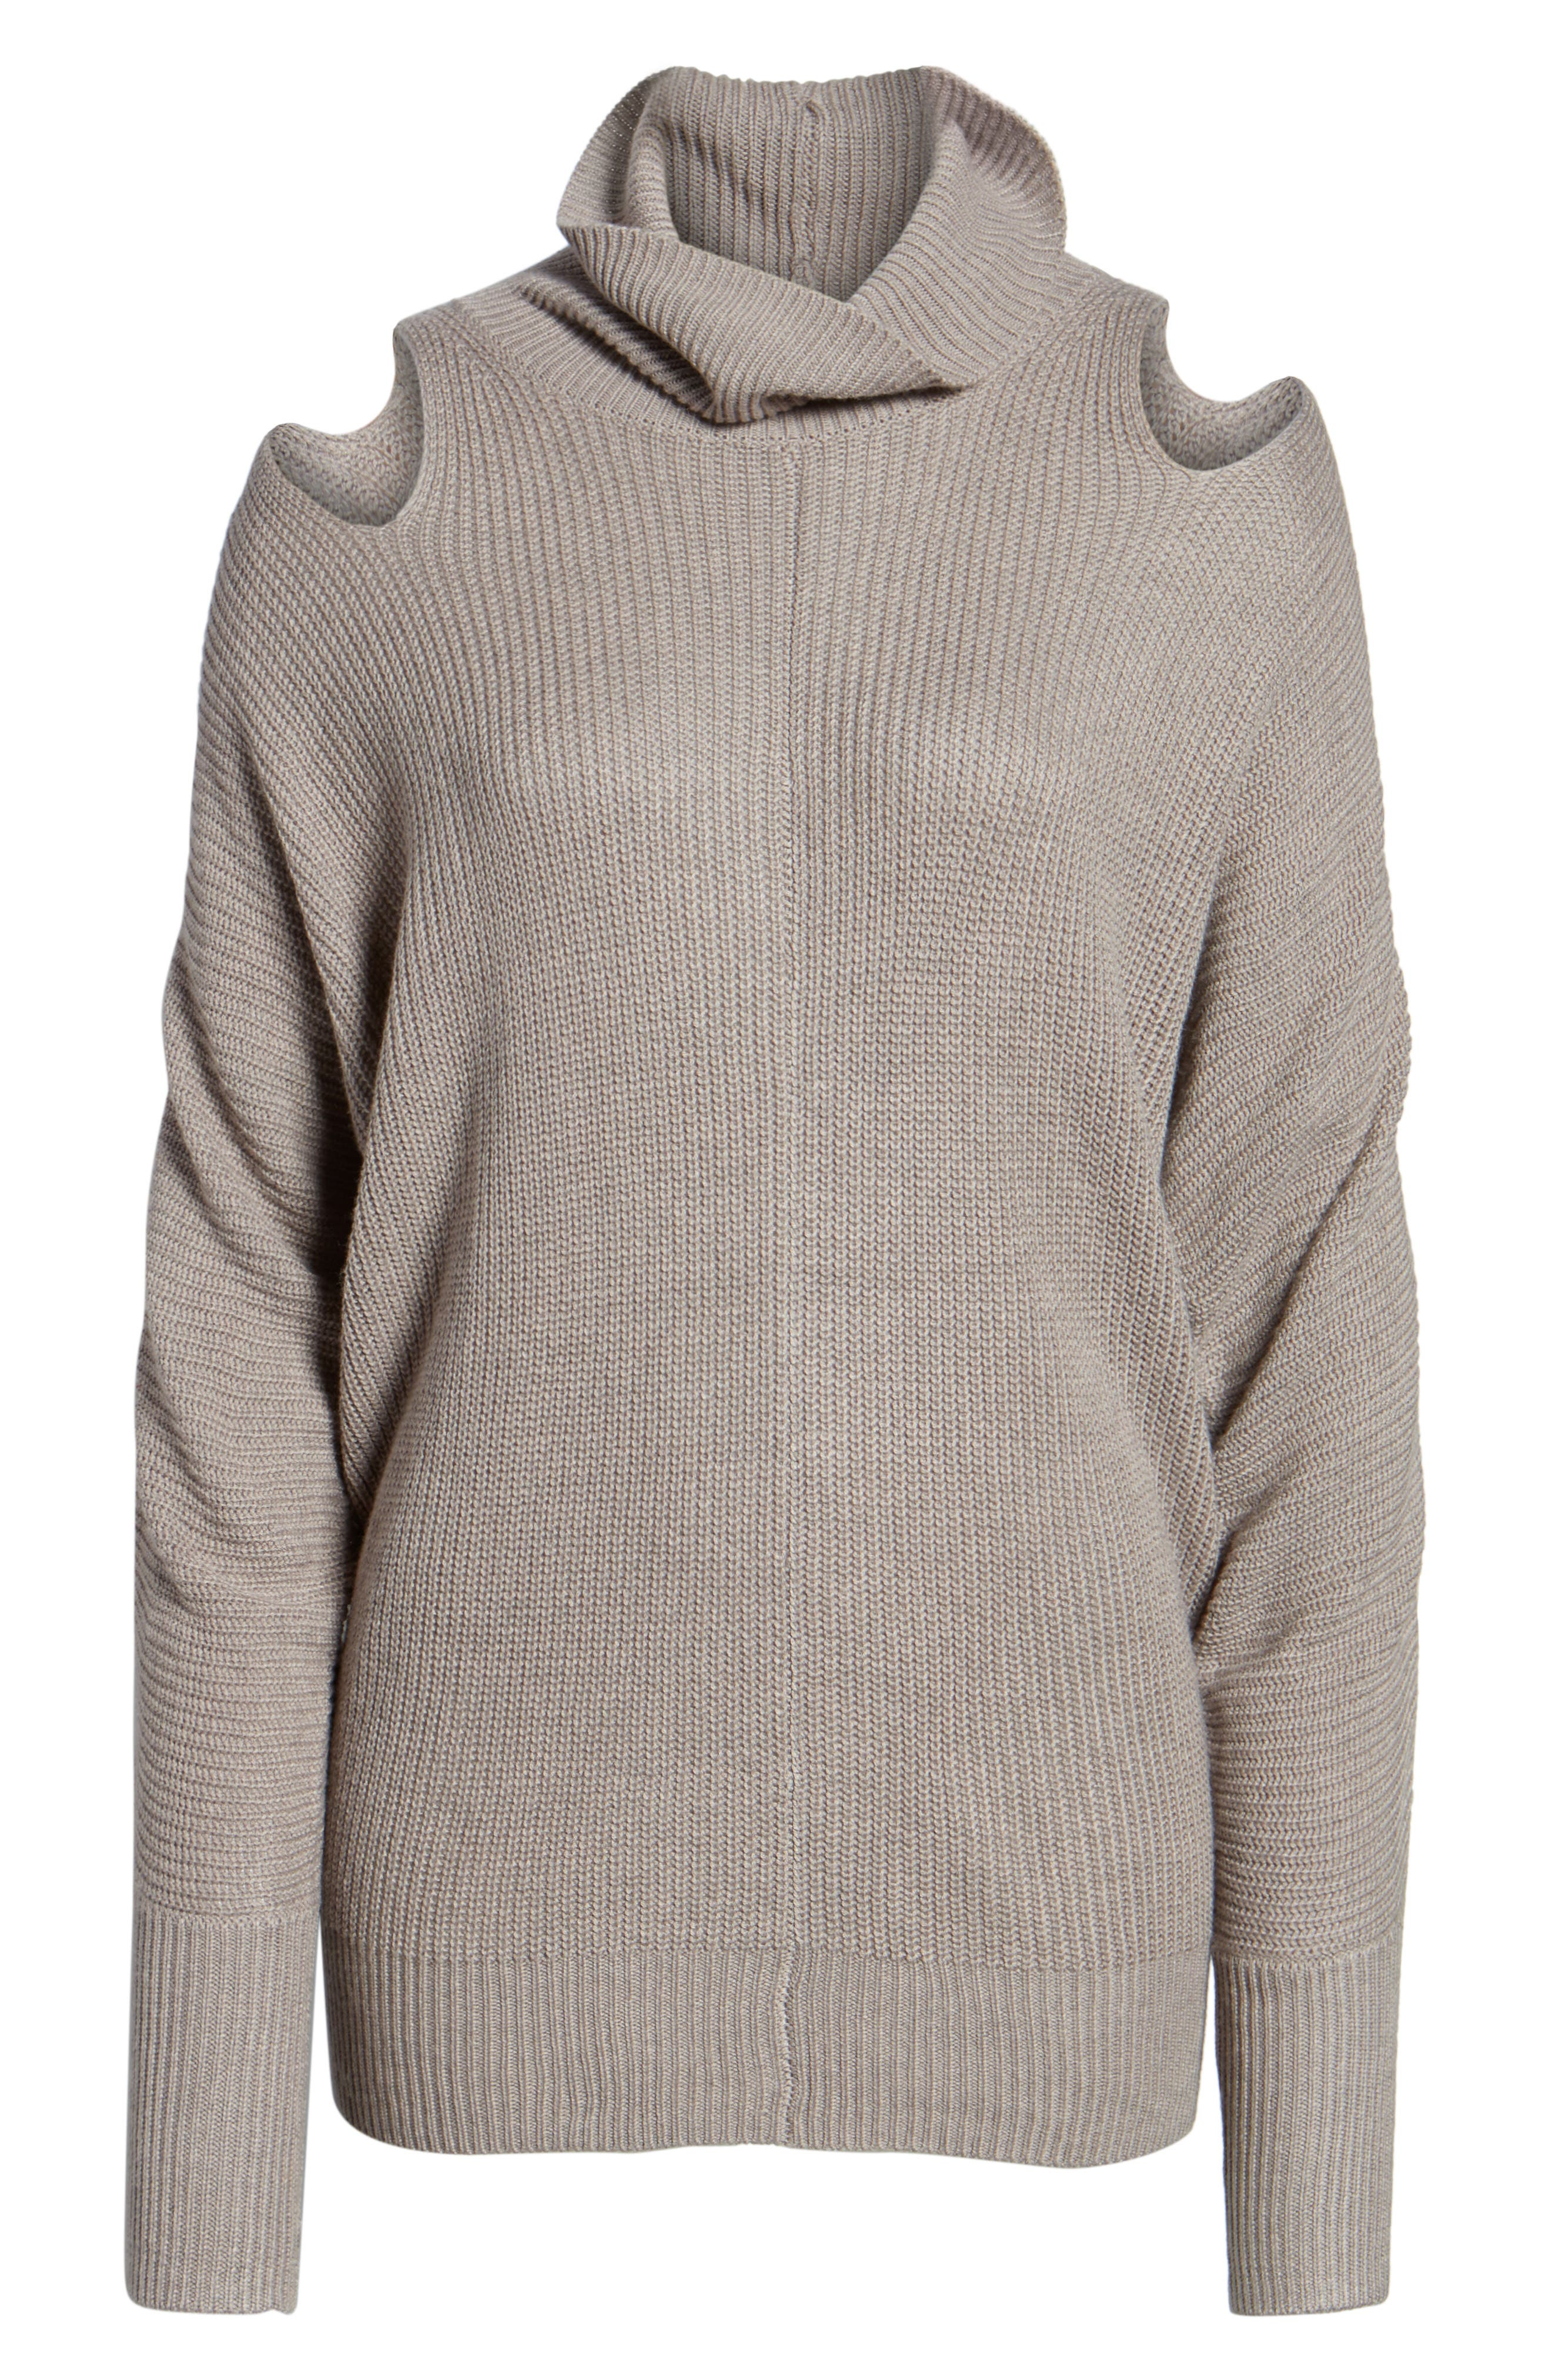 Cutout Sweater,                             Alternate thumbnail 12, color,